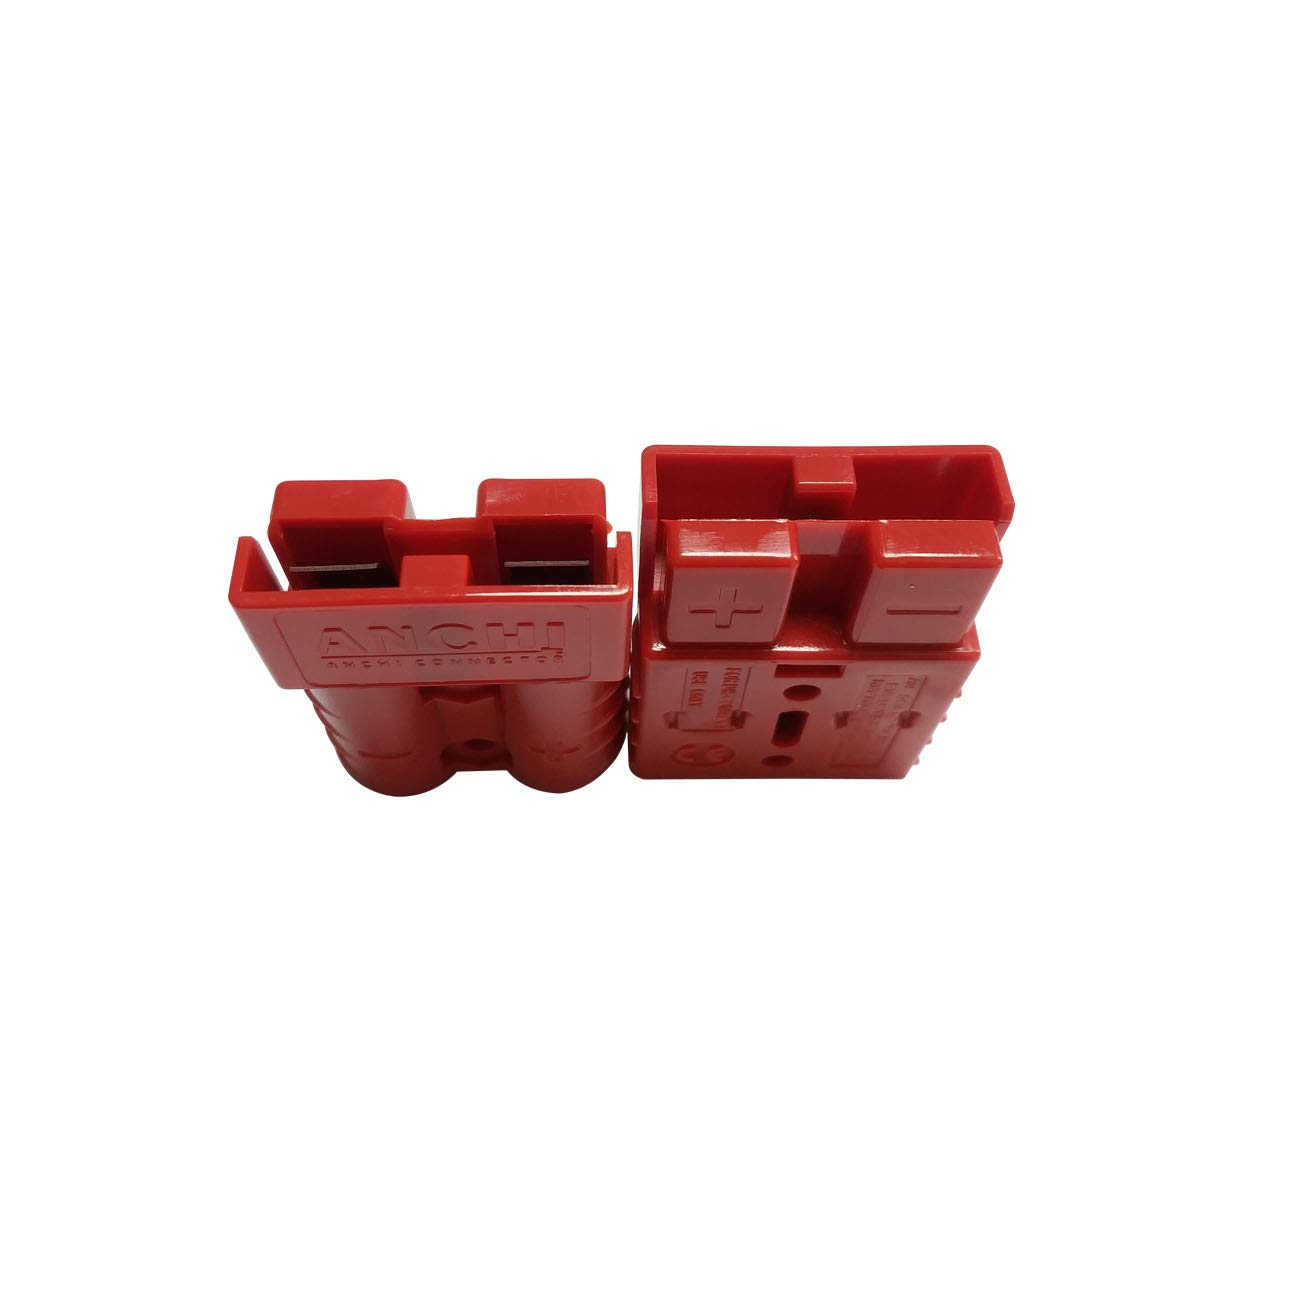 Red, 10//12awg 50Amp Power Connector Plug 50A Quick Connect Disconnect 600 V 10 Pairs 20pcs for Anderson 50Amp